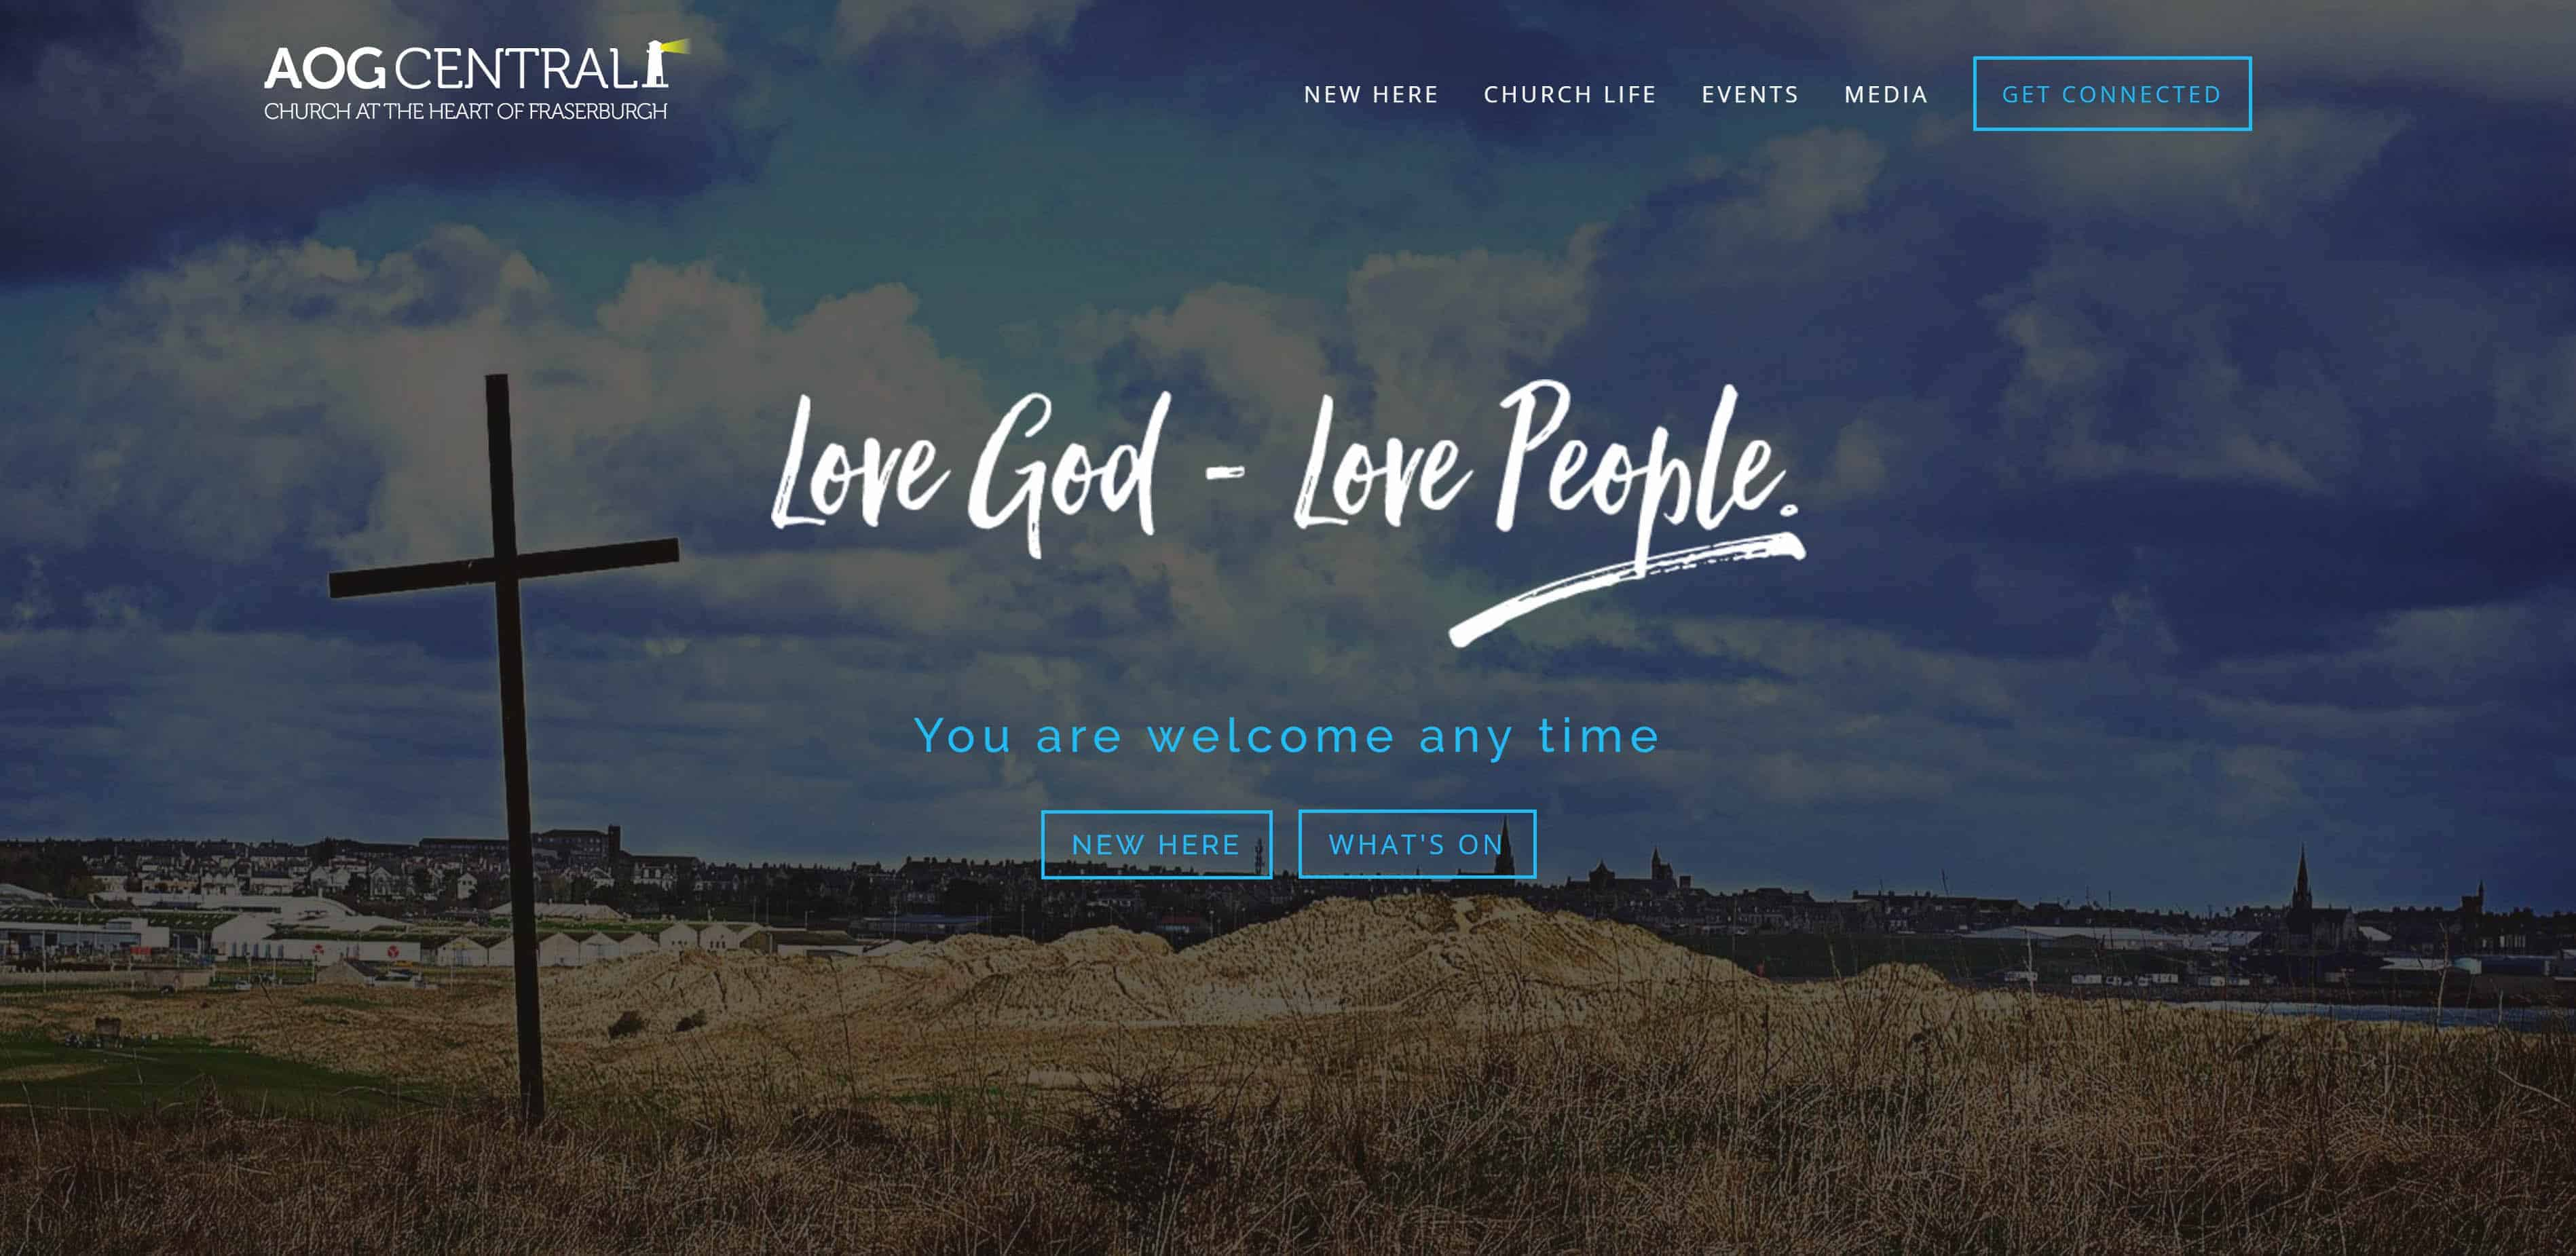 Church Website Homepage - AOG Central